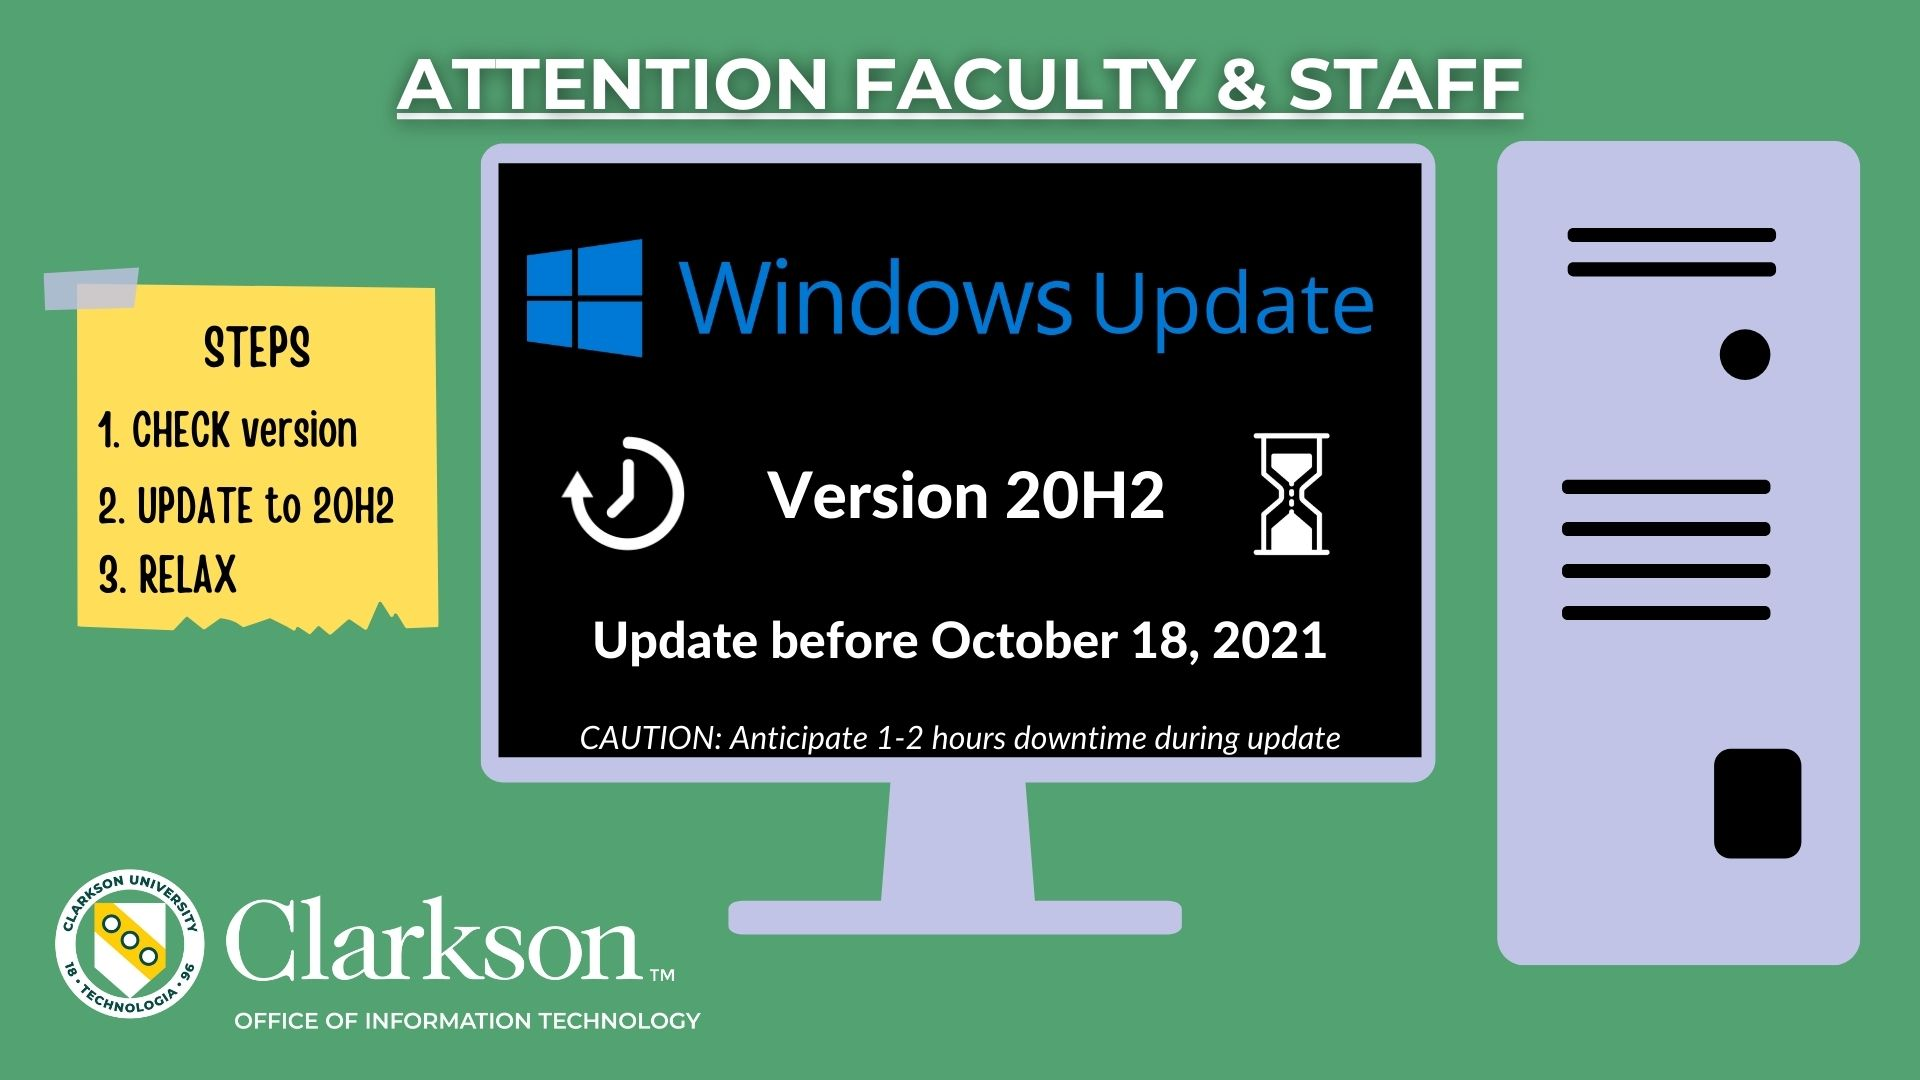 Faculty and Staff: Urged to Update Windows Devices